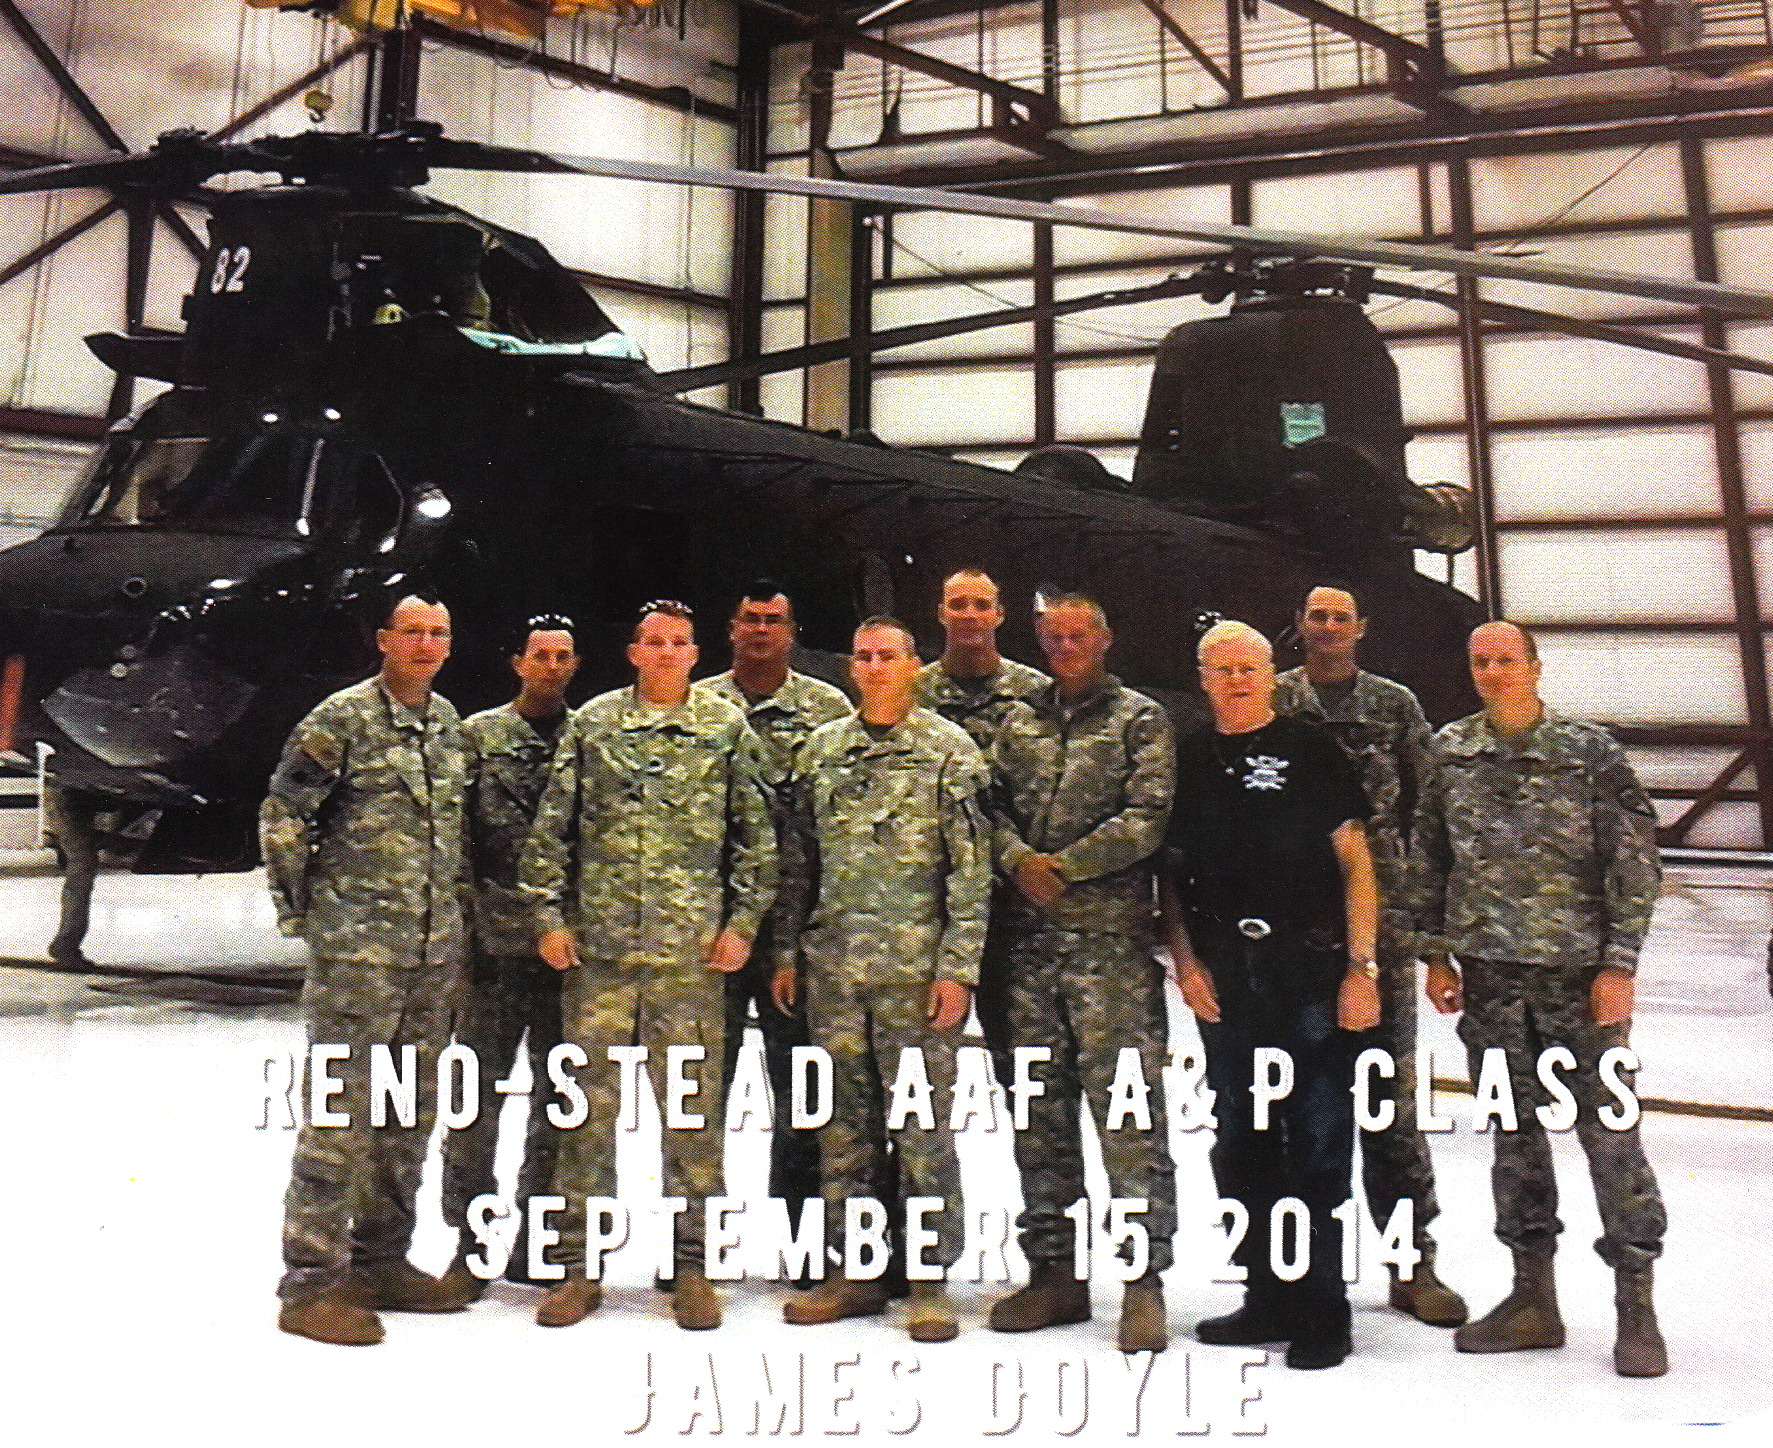 Stead Air Force Base A&P course